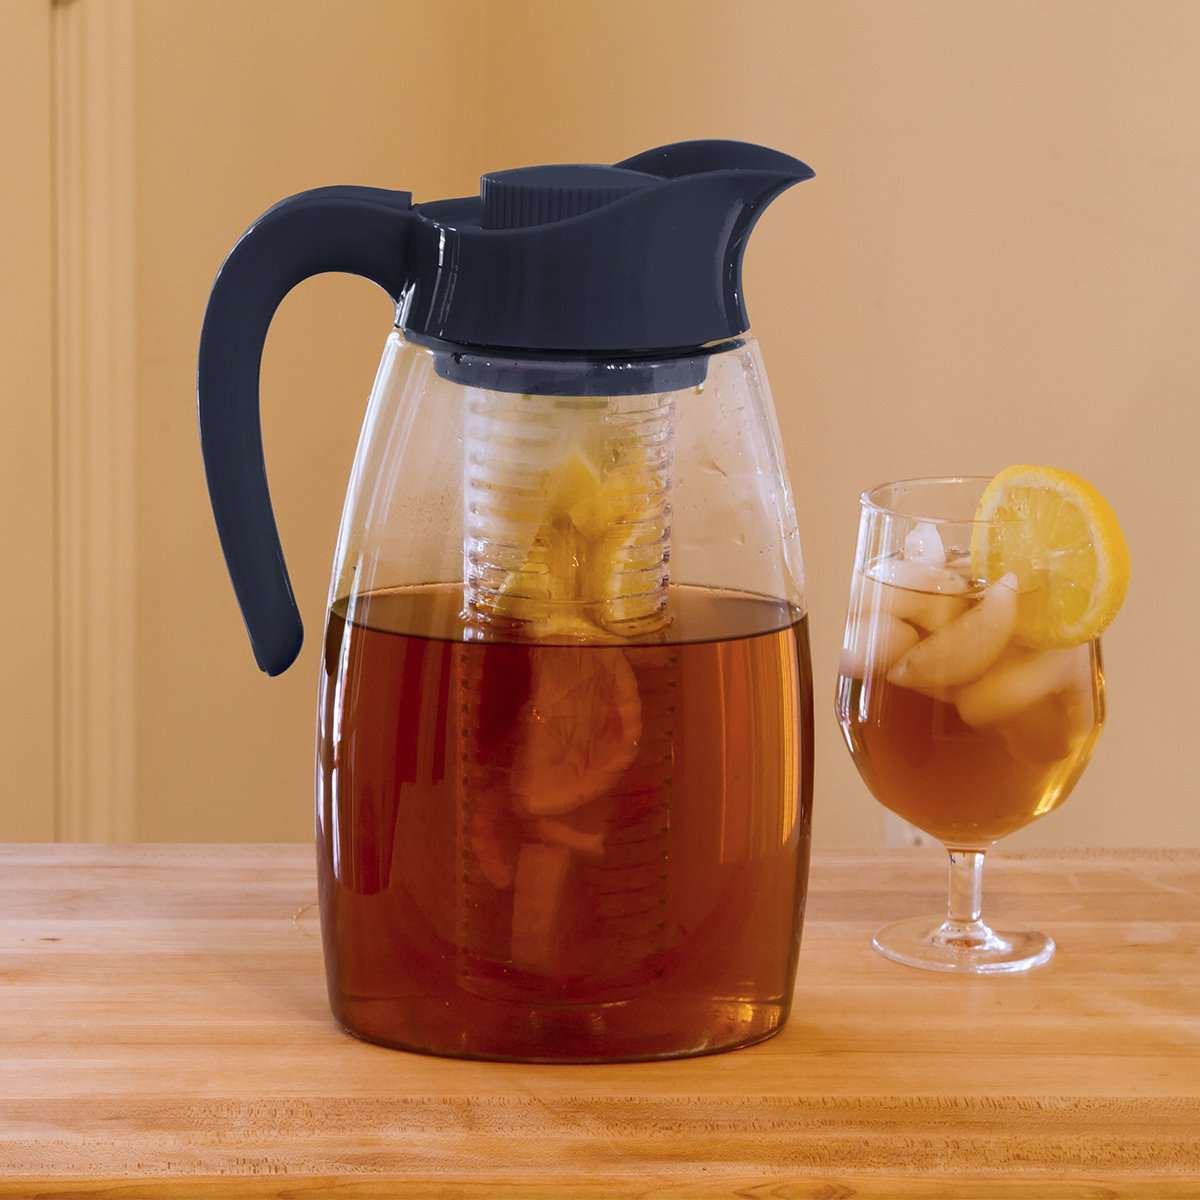 Primula Flavor-It Beverage System – Includes Large Capacity Fruit Infuser Core, Tea Infuser Core, and Chill Core